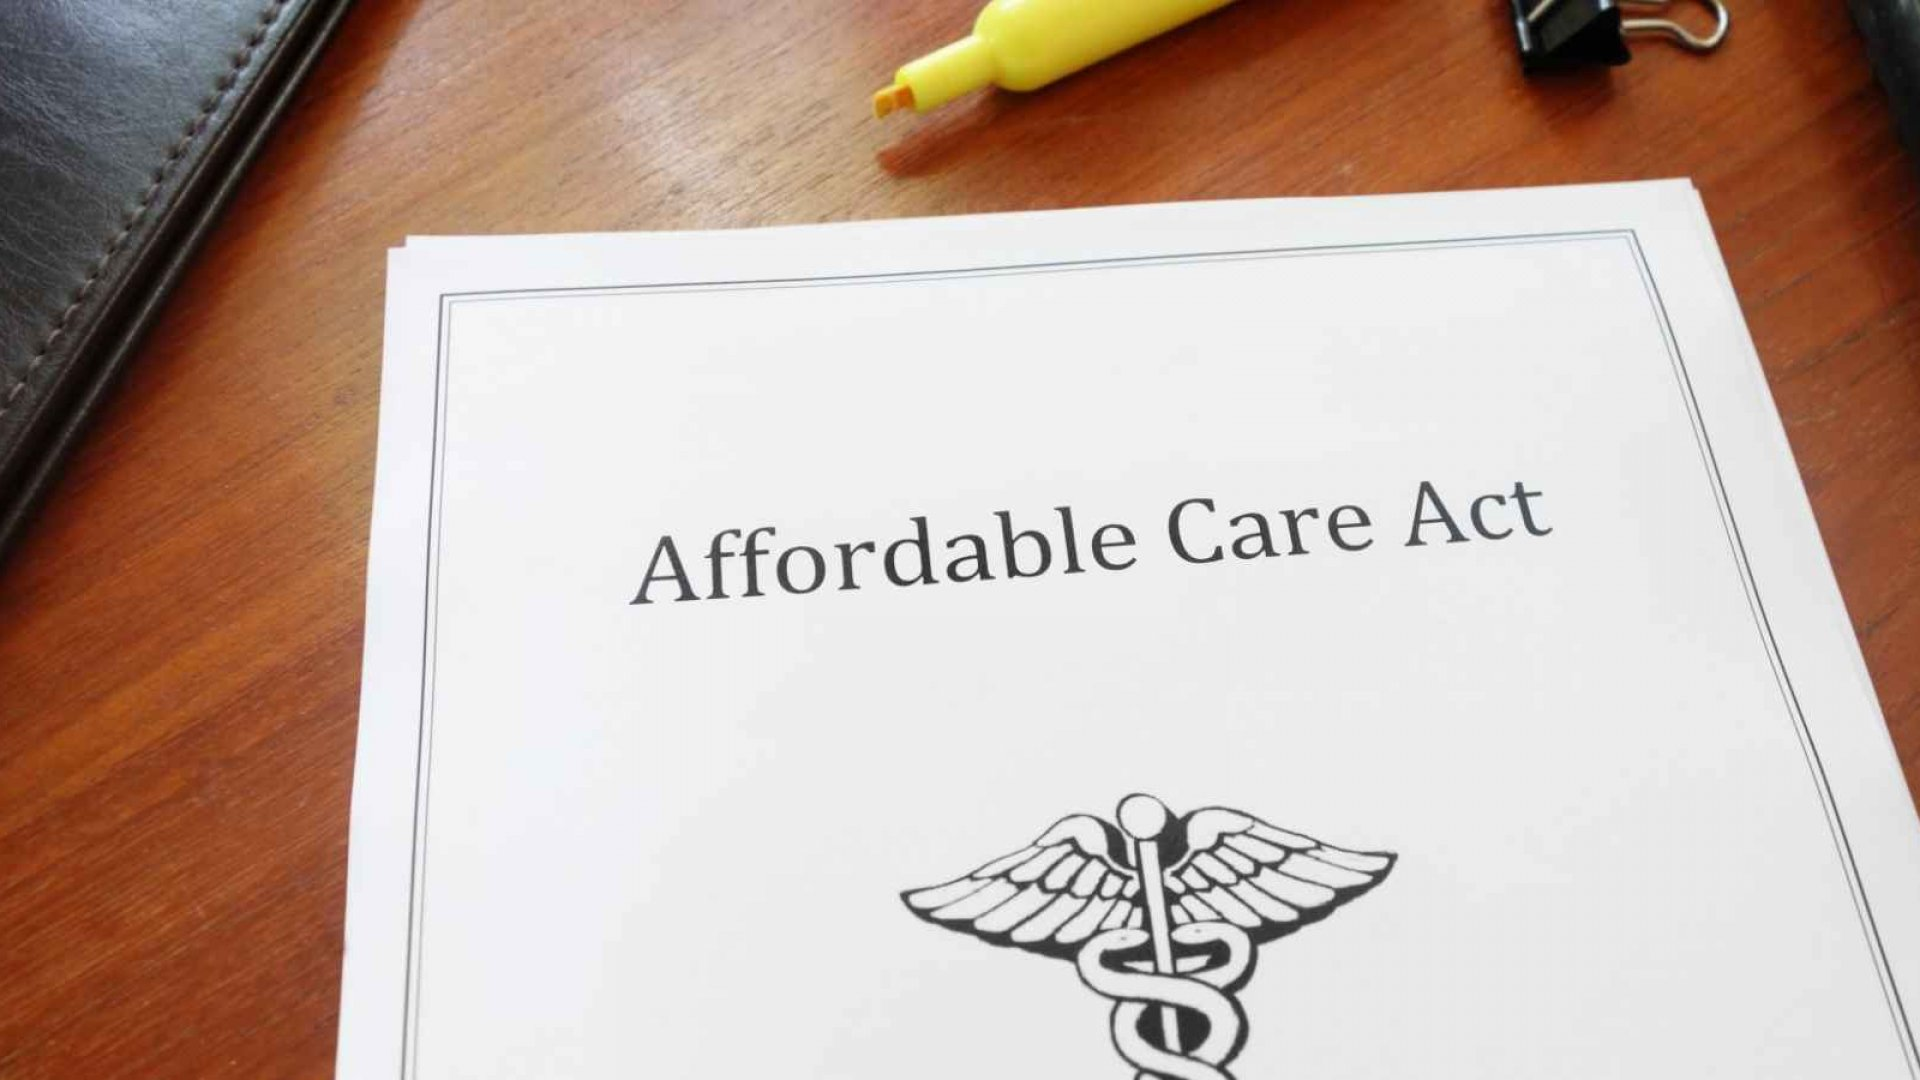 Why the Next President Won't Radically Change Obamacare Anytime Soon